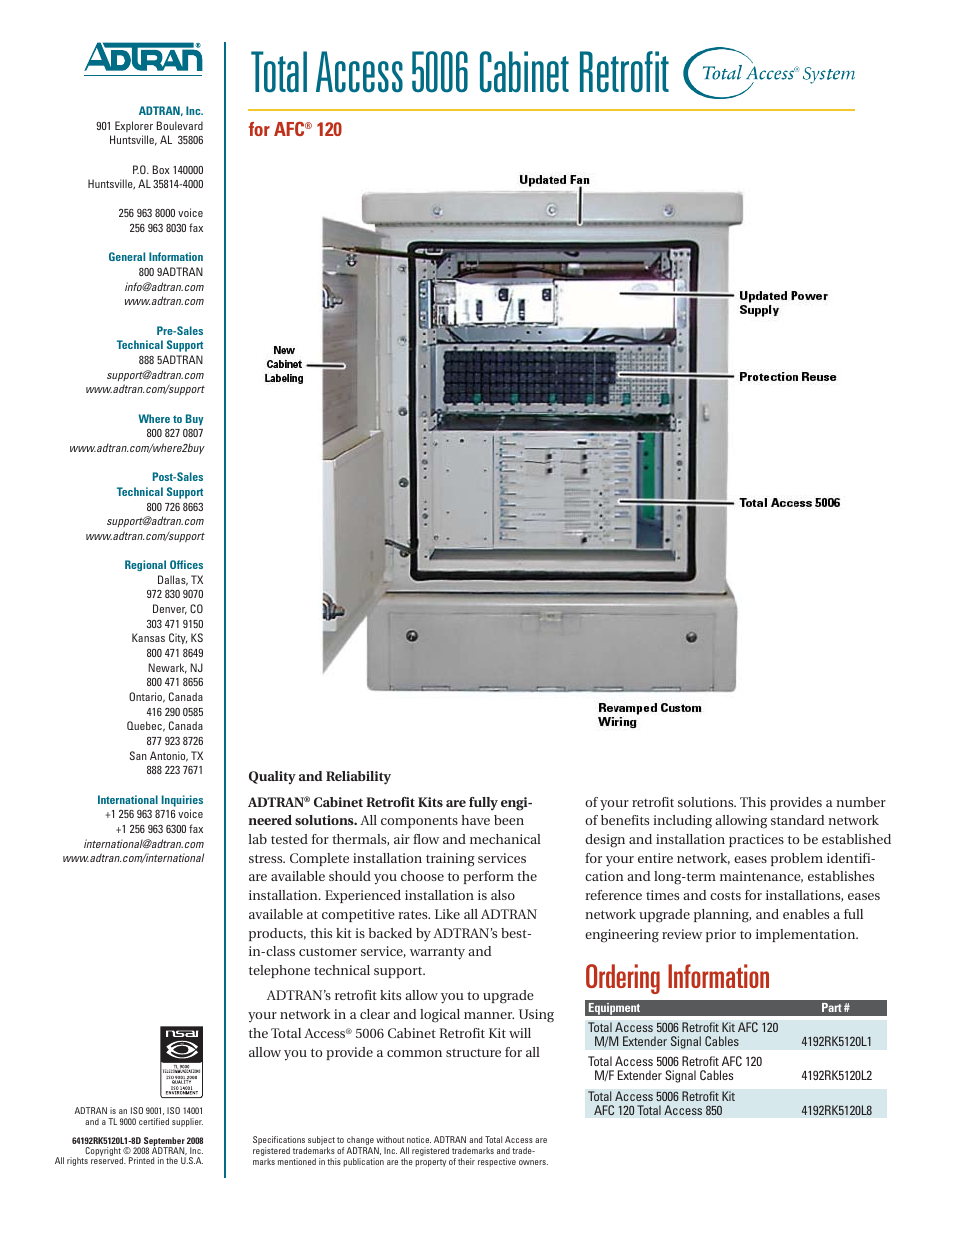 Total Access 5006 Cabinet Retrofit Ordering Information